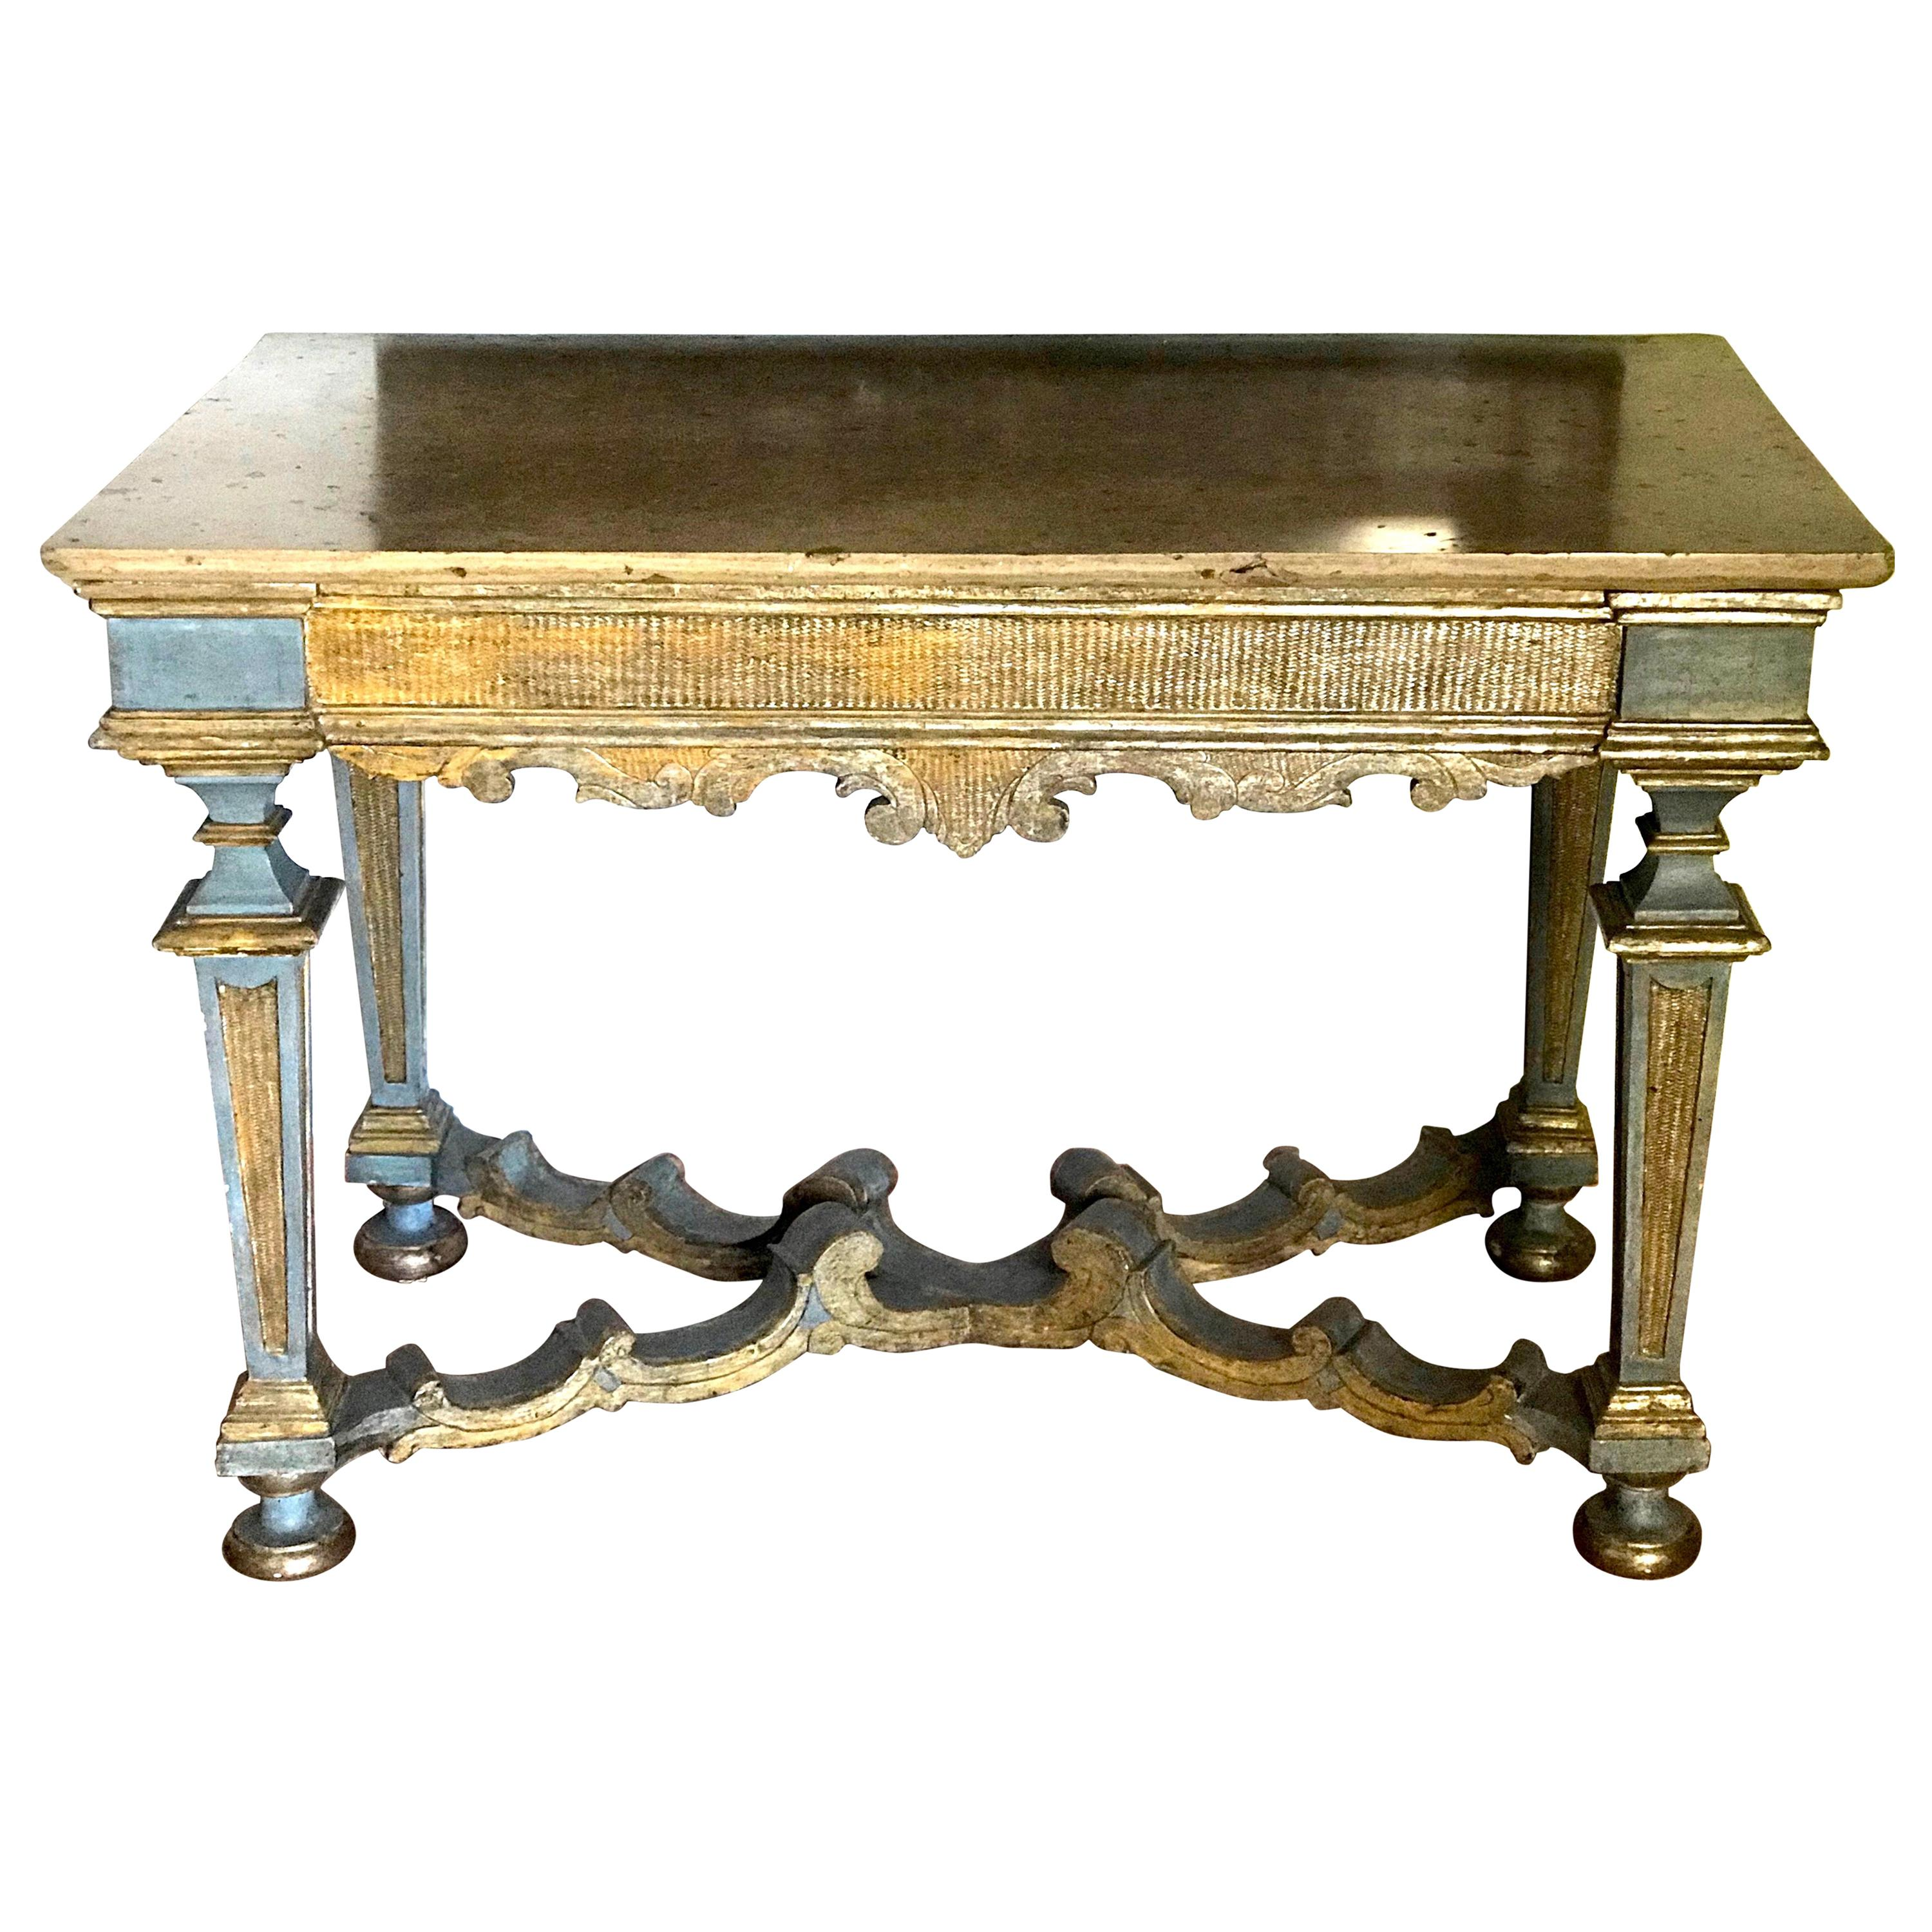 Italian 17th Century Painted and Parcel-Gilt Console Table